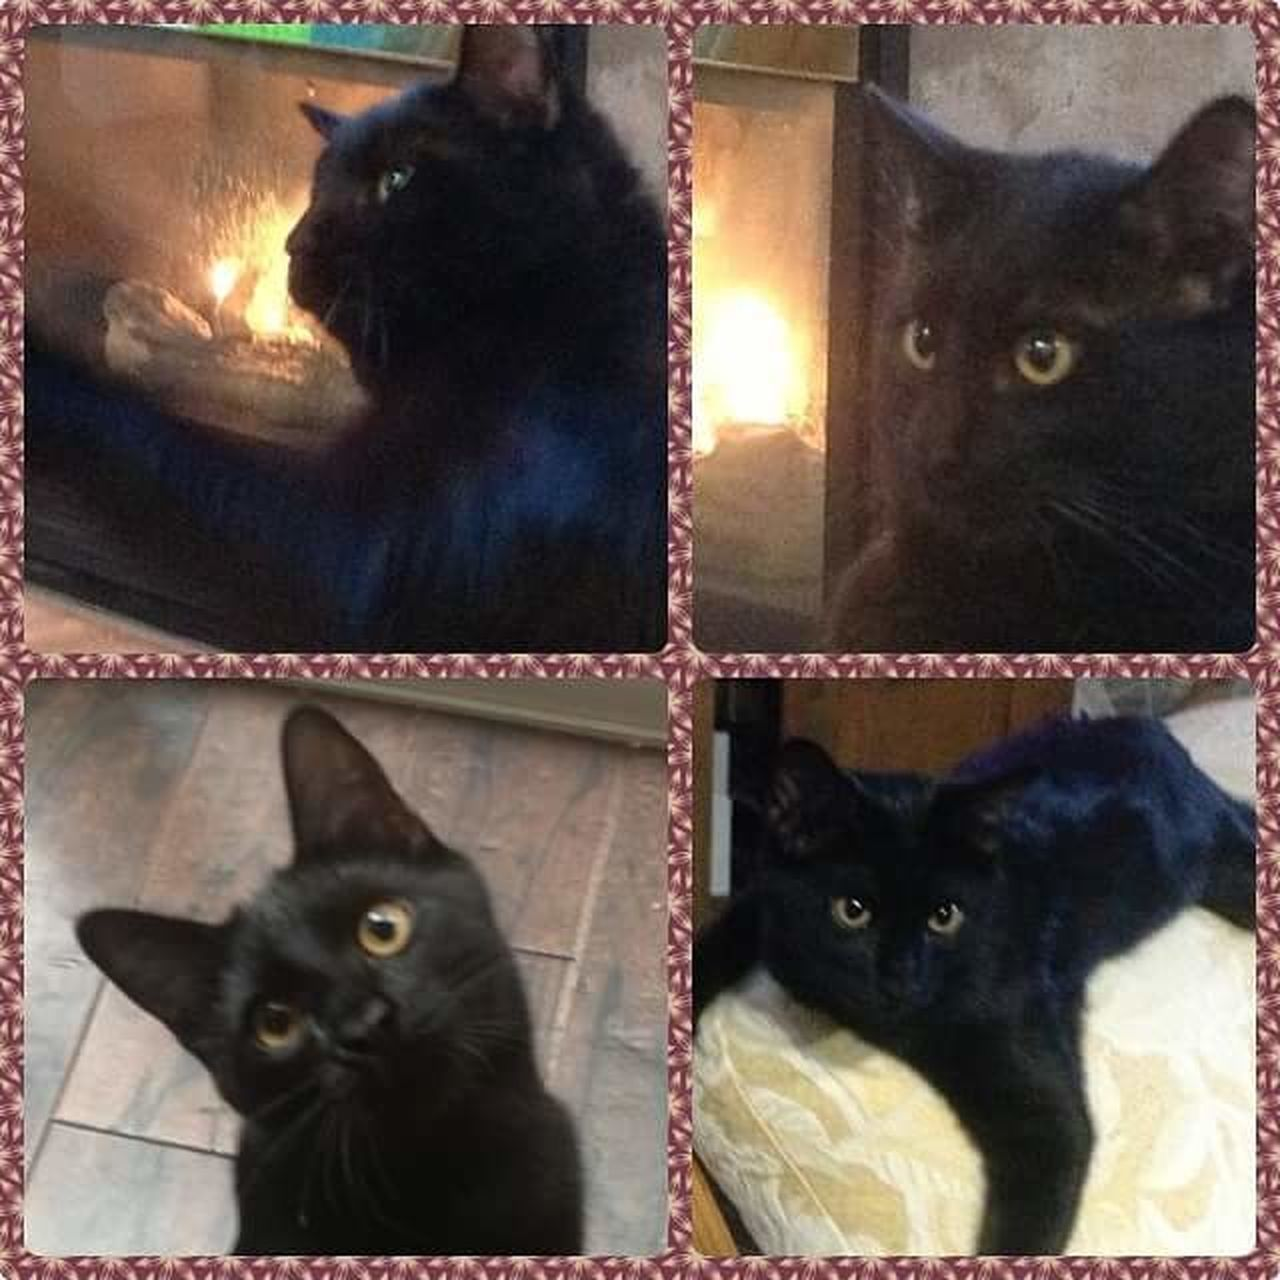 Pets One Animal Domestic Animals Domestic Cat Looking At Camera Animal Portrait No People Animal Themes Mammal Indoors  Dog Feline Close-up Day Black Cats Are Beautiful Indoors  Looking At Camera Postcard Beauty In Nature